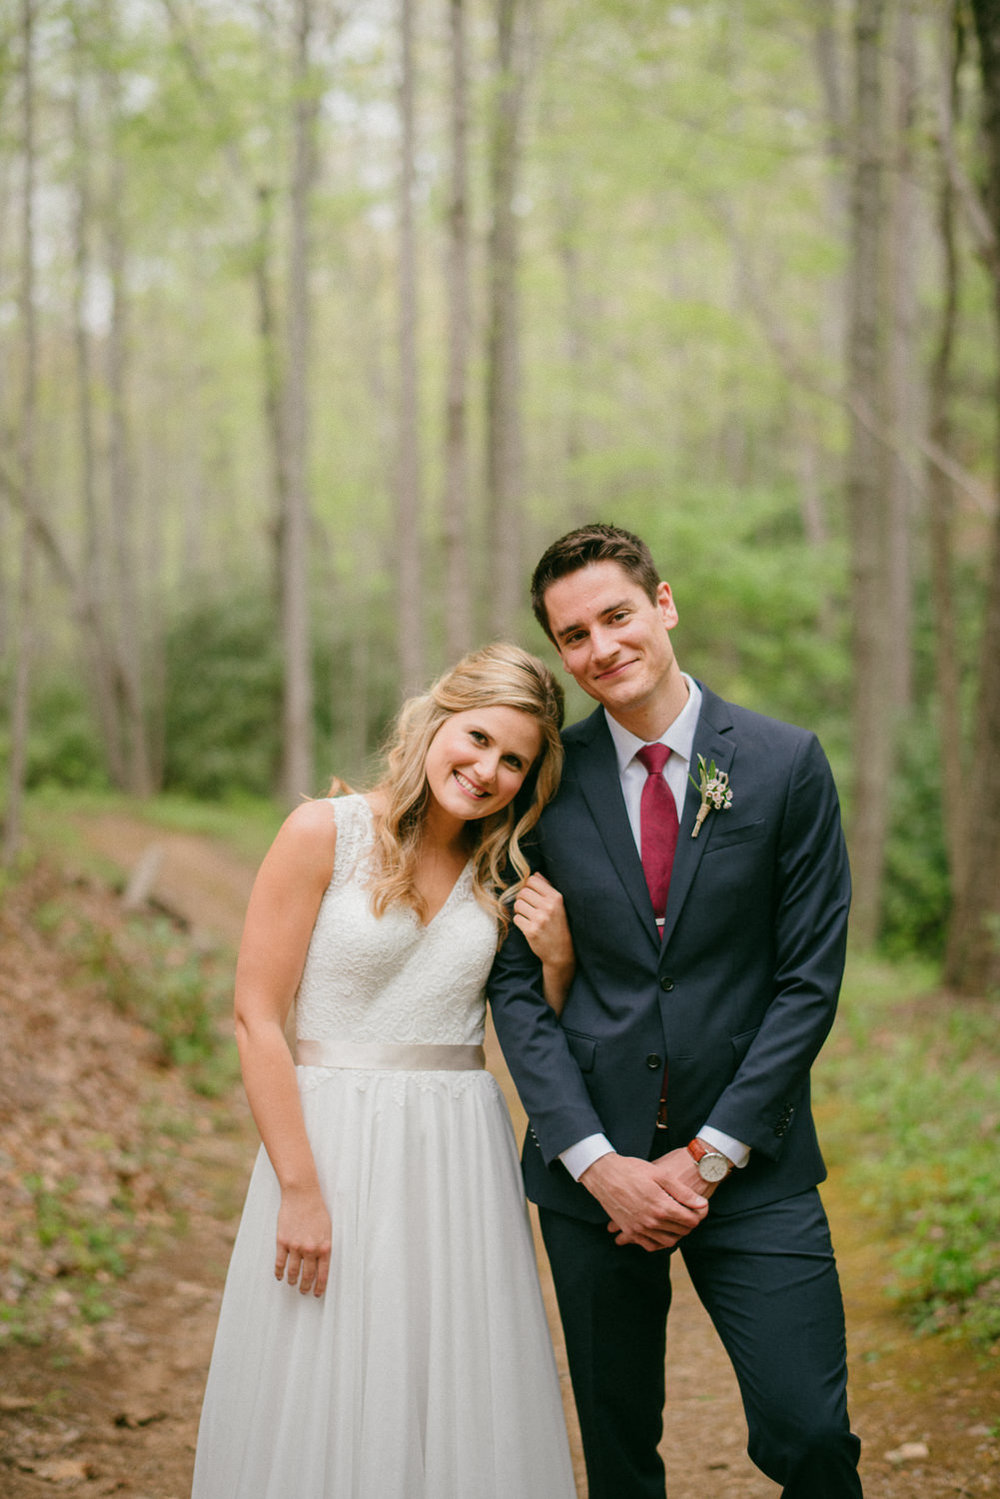 AshevilleWedding_RachelAndTyler_by_TheImageIsFound_0039.jpg